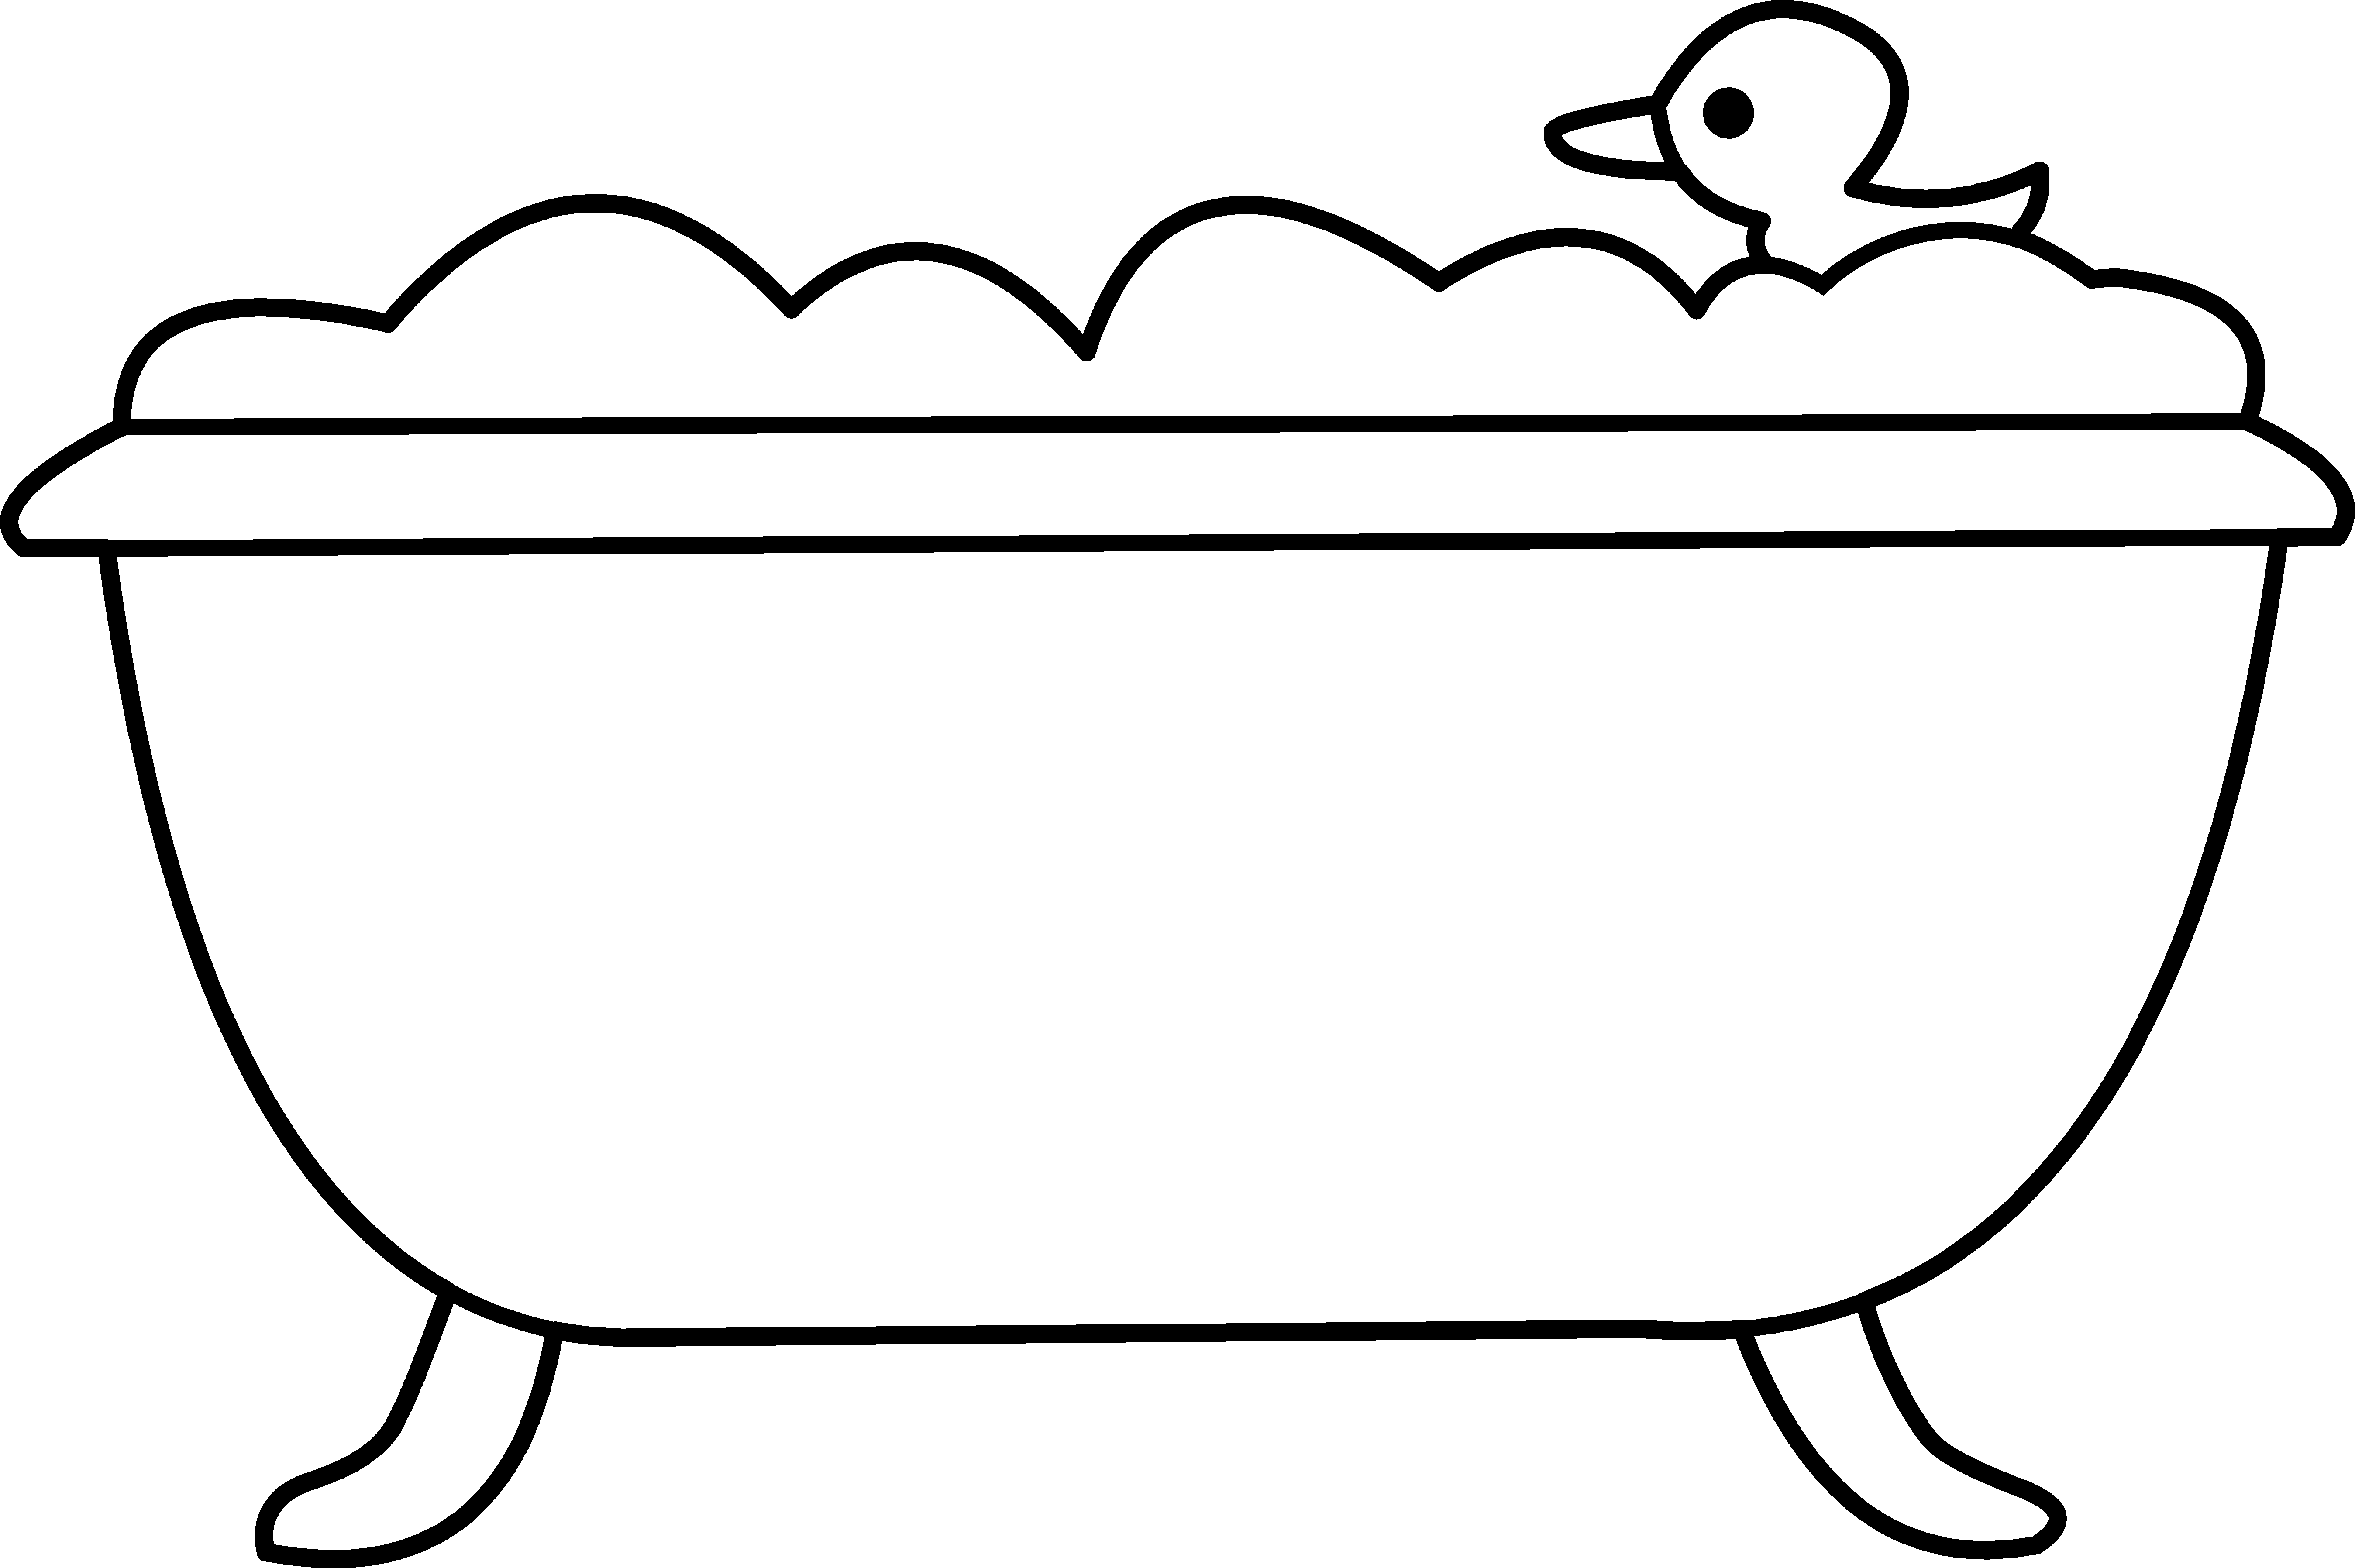 Line Art Duck : Rubber duck clipart black and white panda free